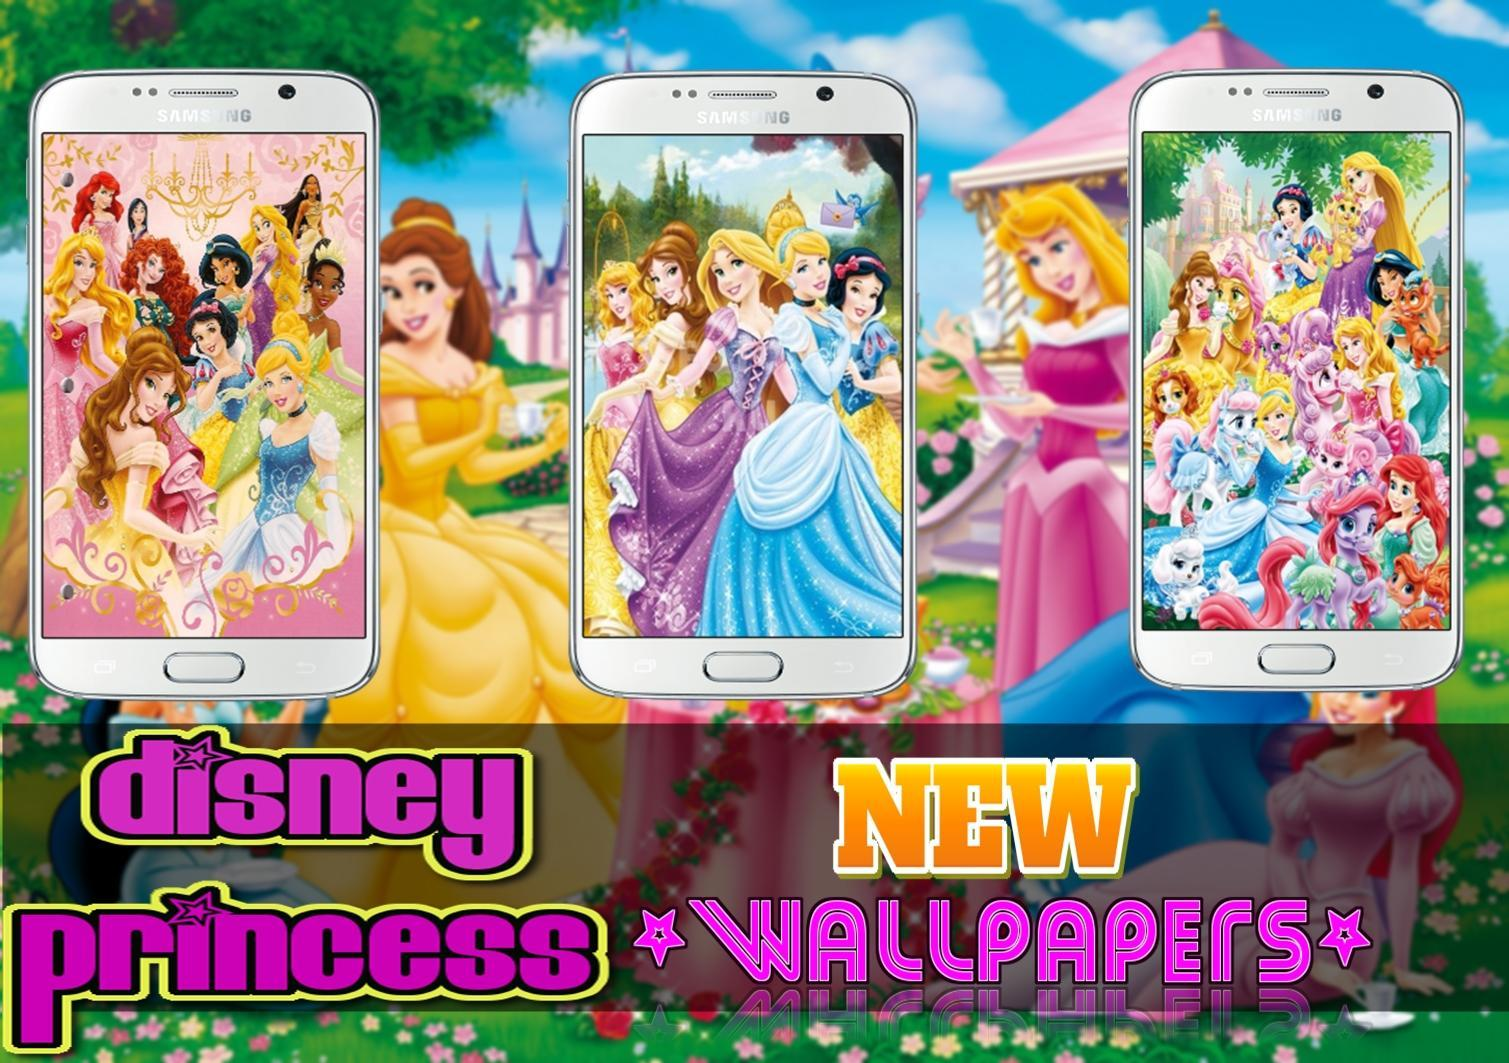 Disney Princess Hd Wallpapers Free For Android Apk Download